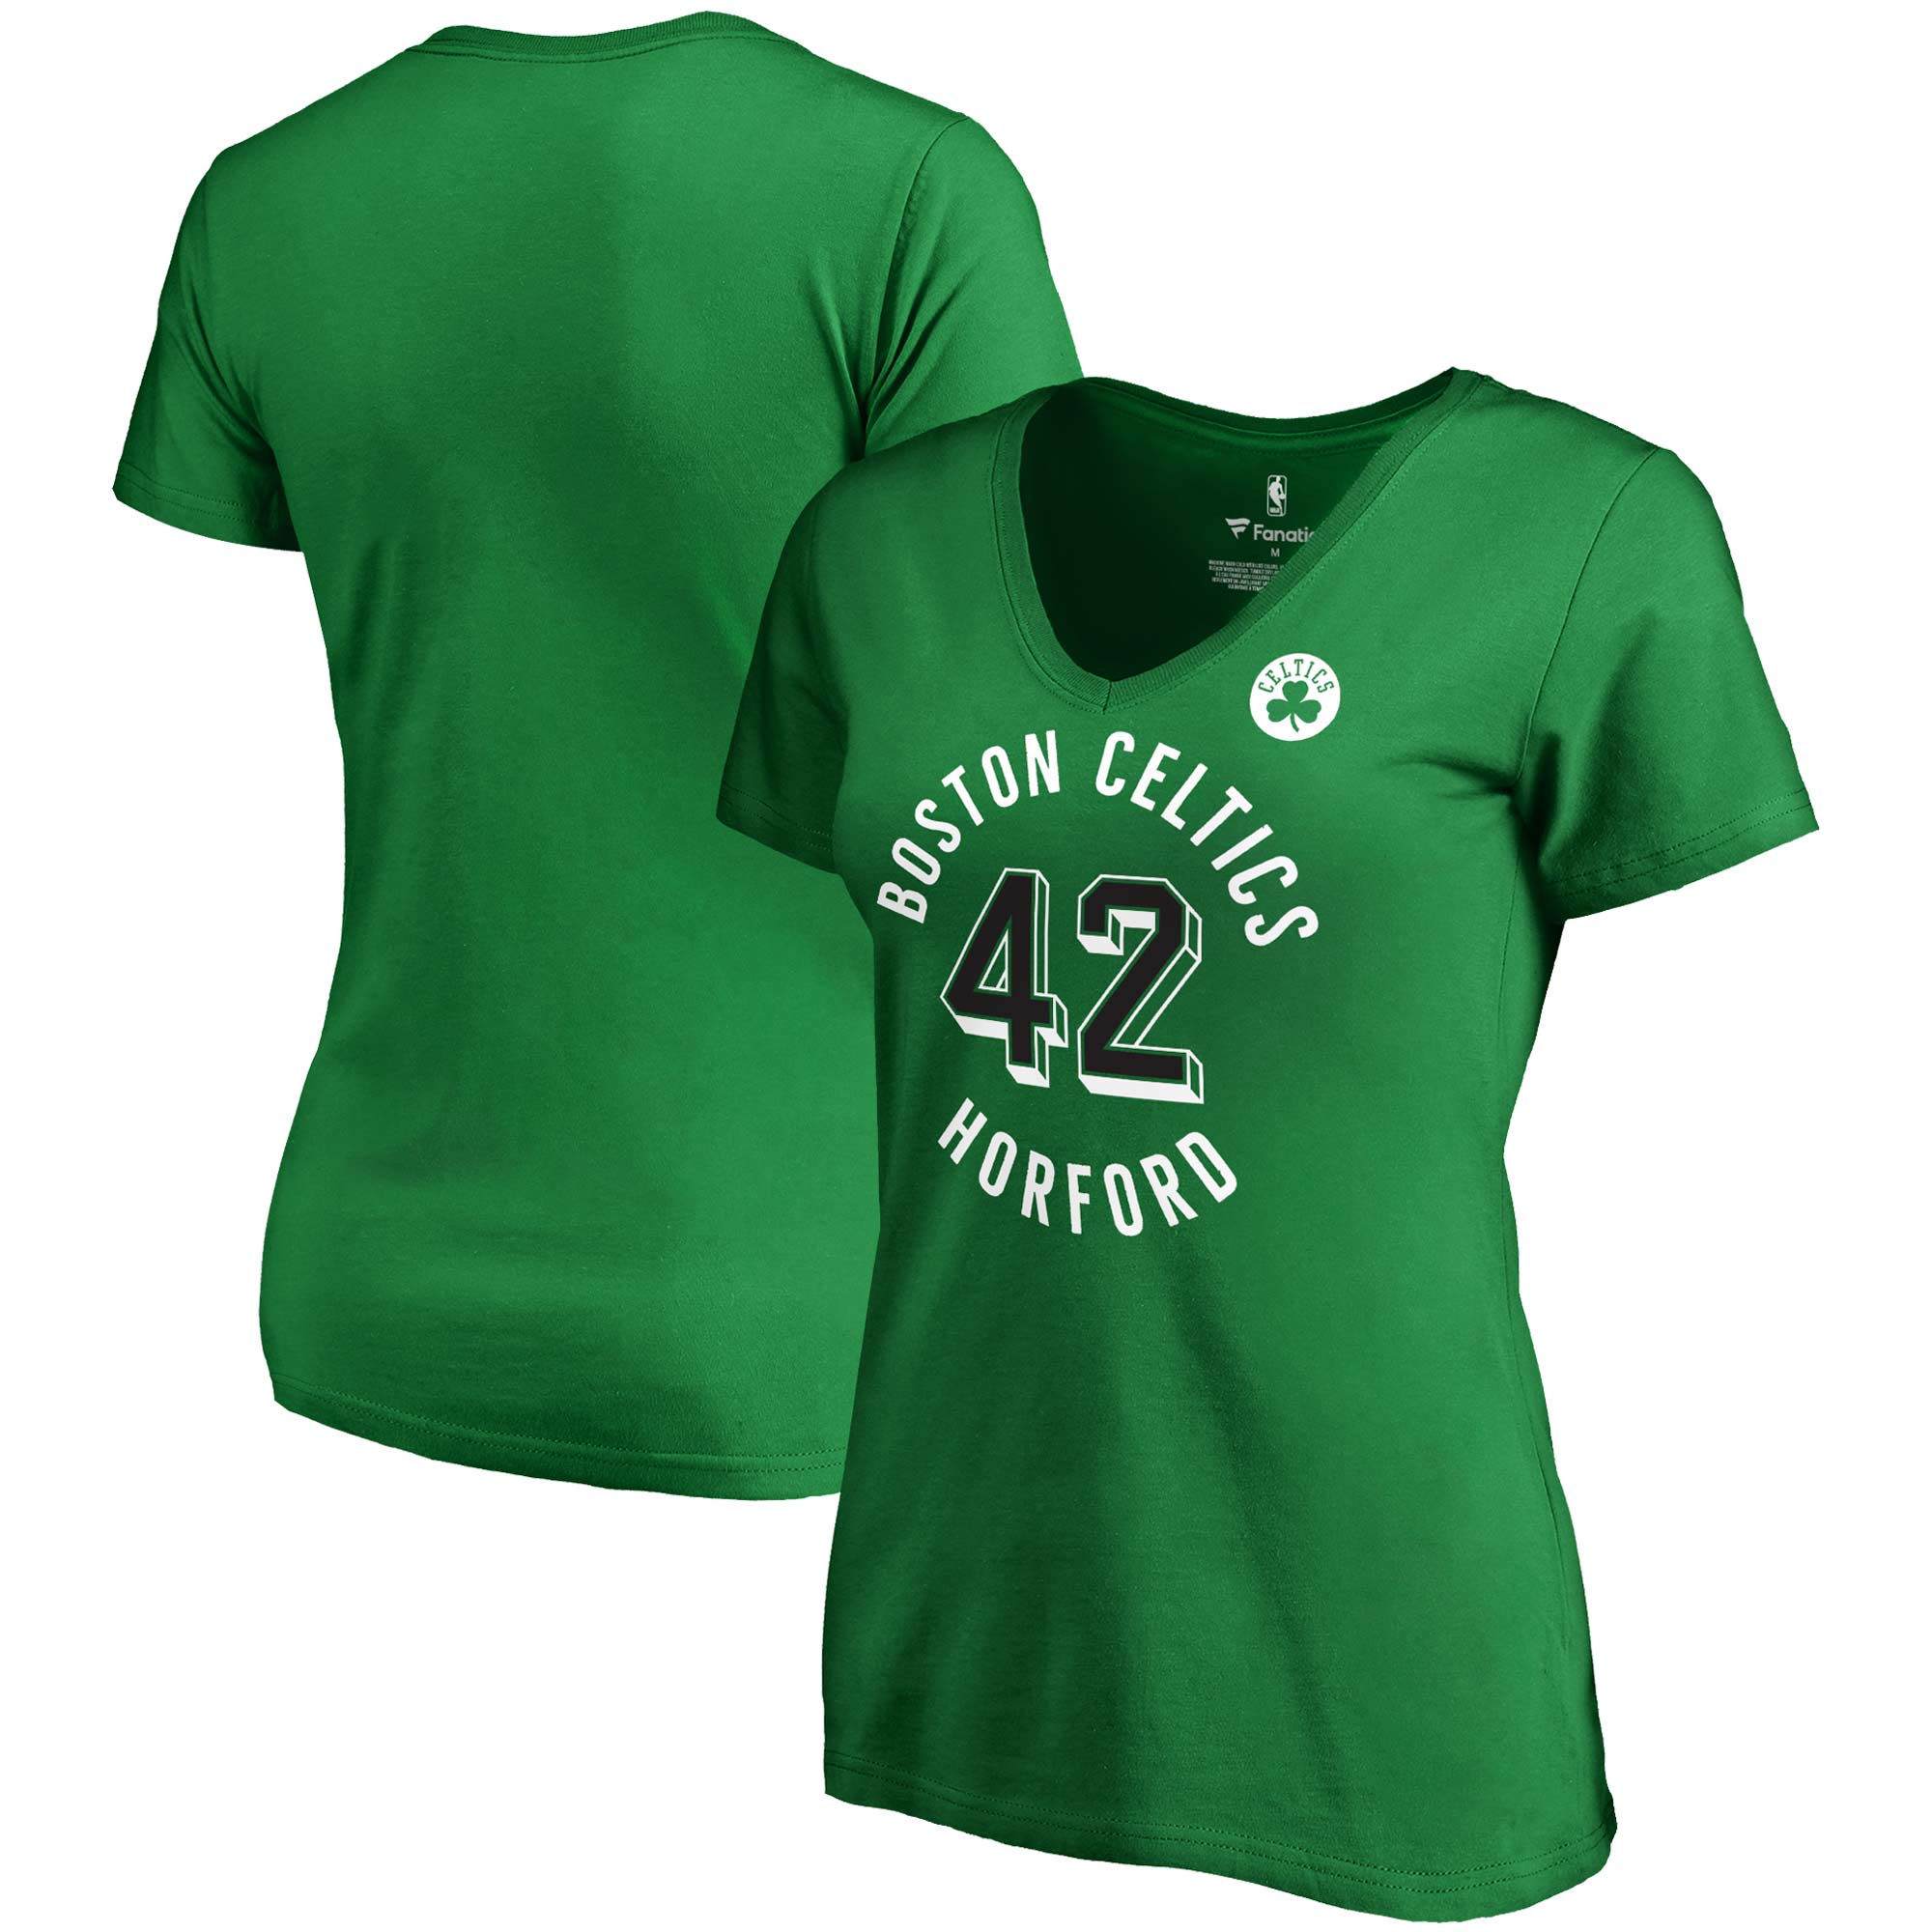 Al Horford Boston Celtics Fanatics Branded Women's Notable Name & Number V-Neck T-Shirt - Kelly Green